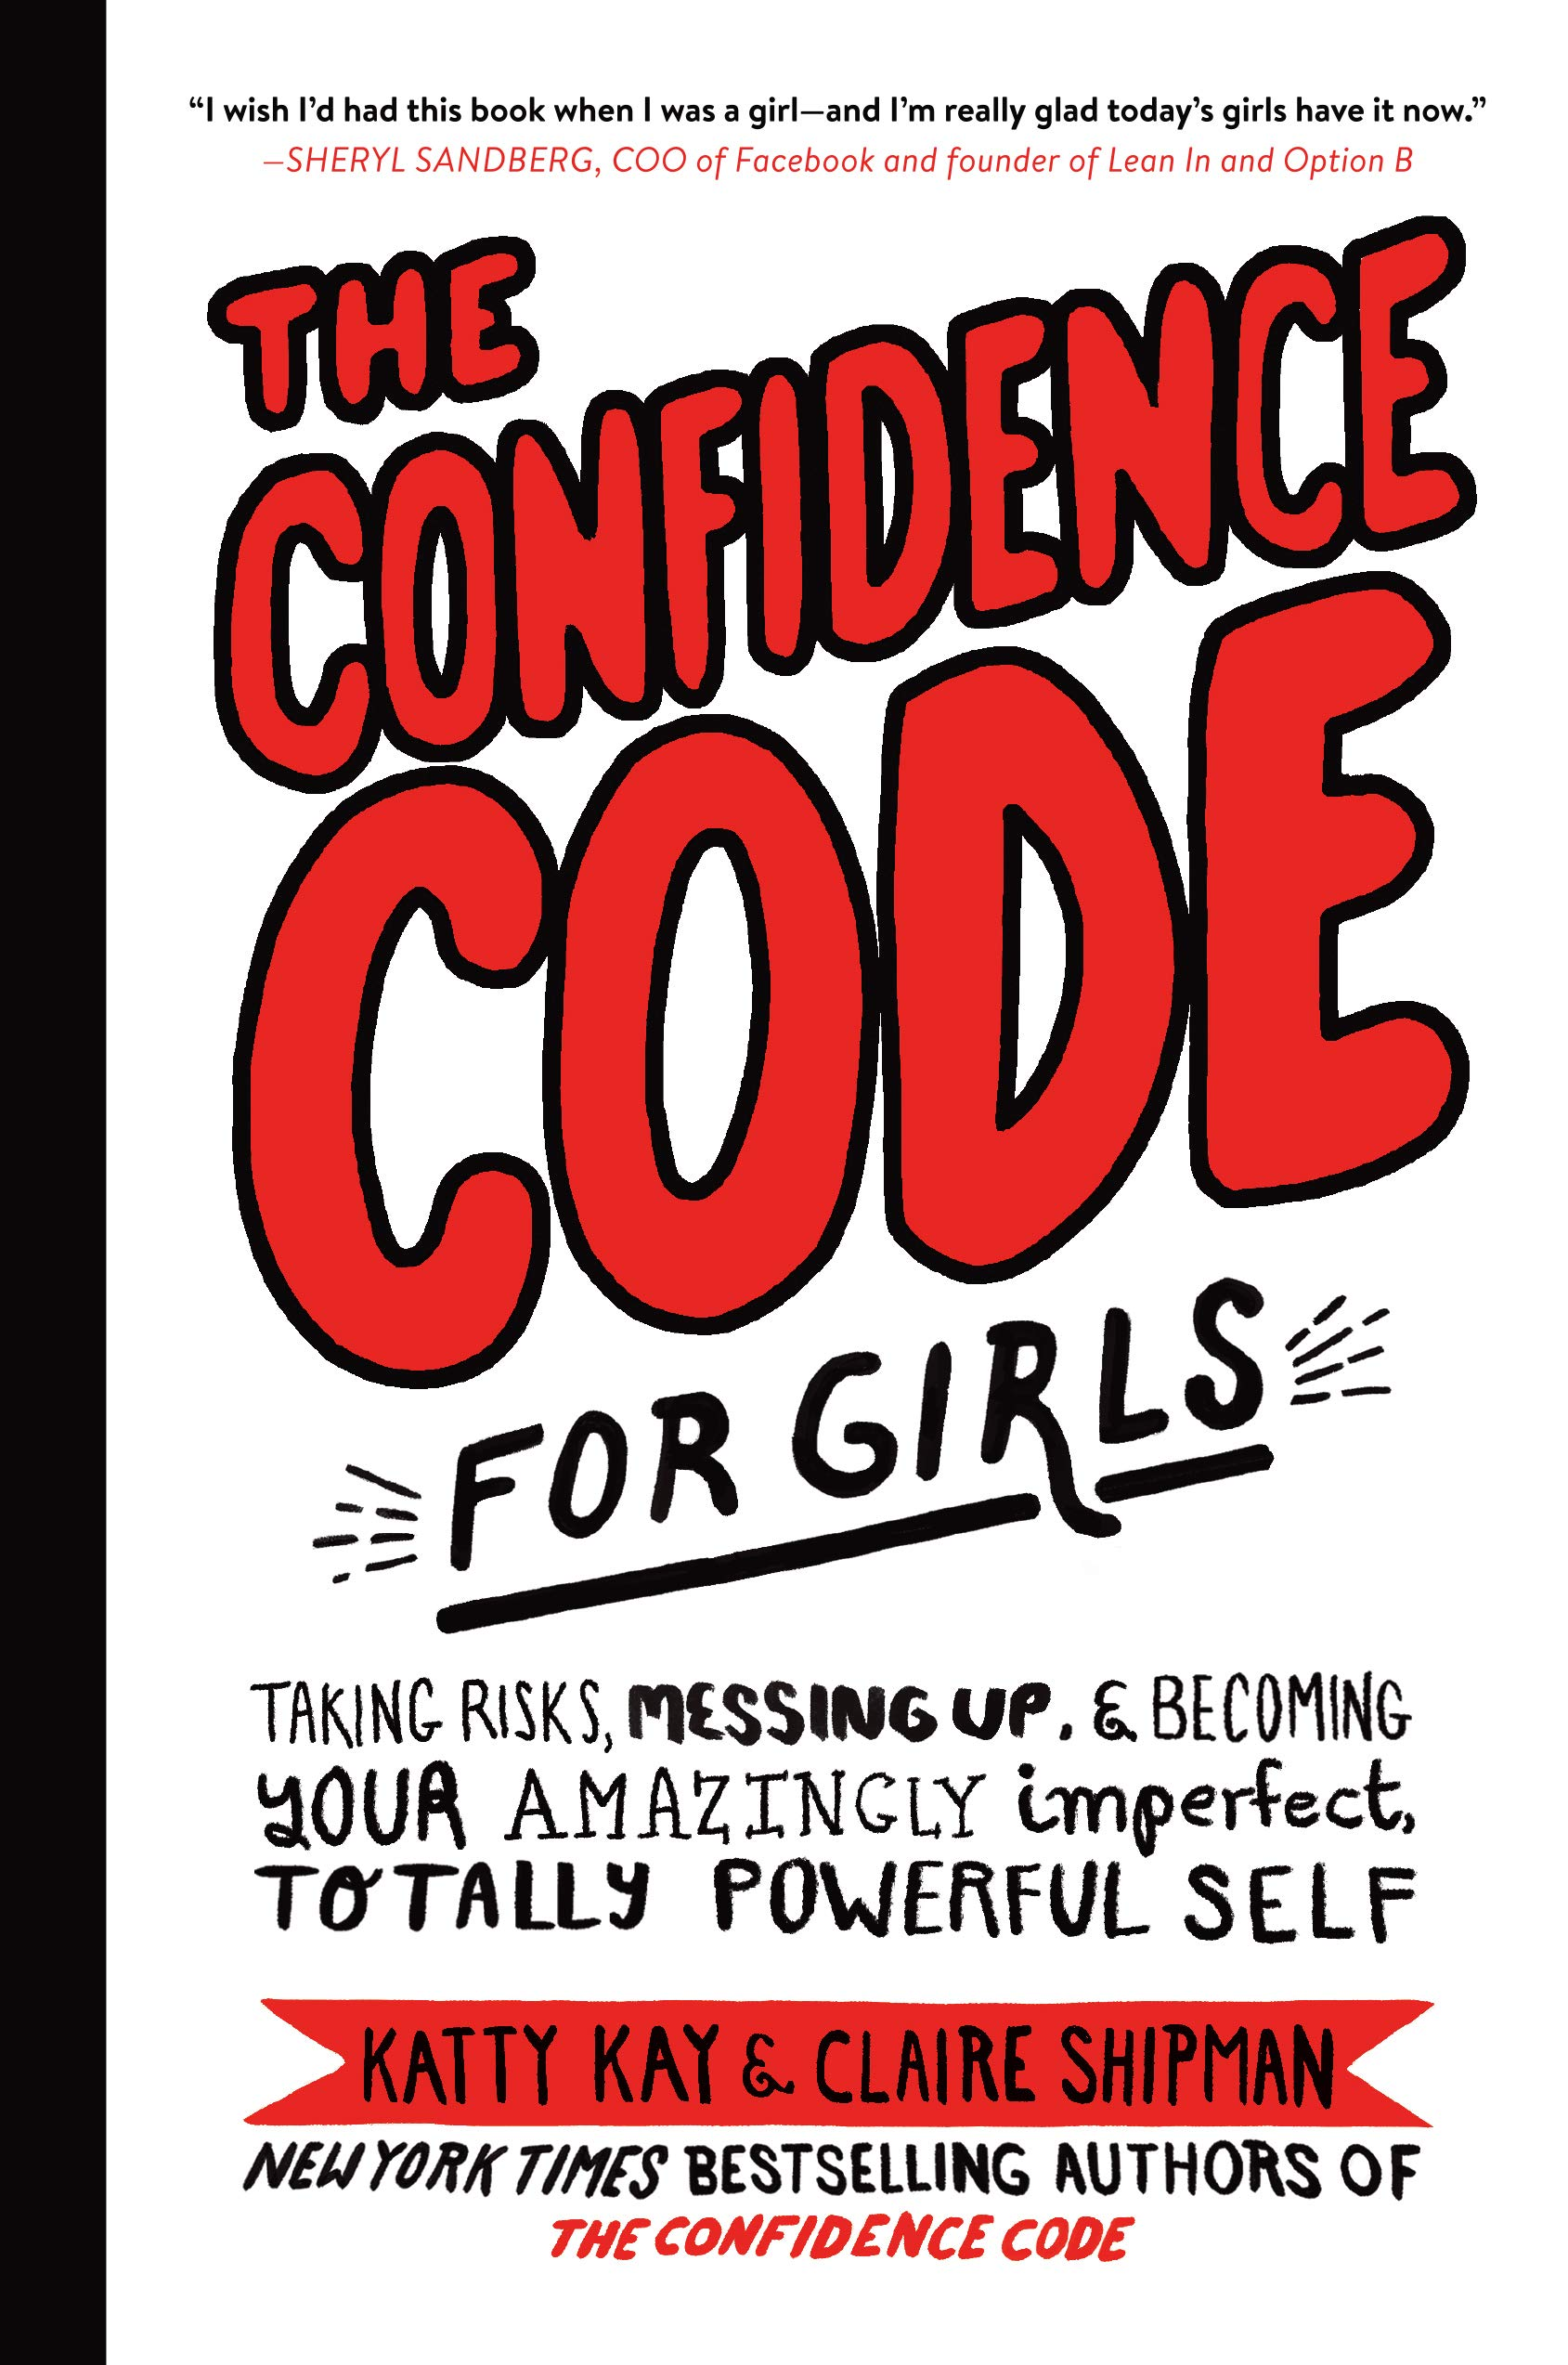 The Confidence Code for Girls  Taking Risks, Messing Up, and Becoming Your  Amazingly Imperfect, Totally Powerful Self  Katty Kay, Claire Shipman, ... b0dc599e2f